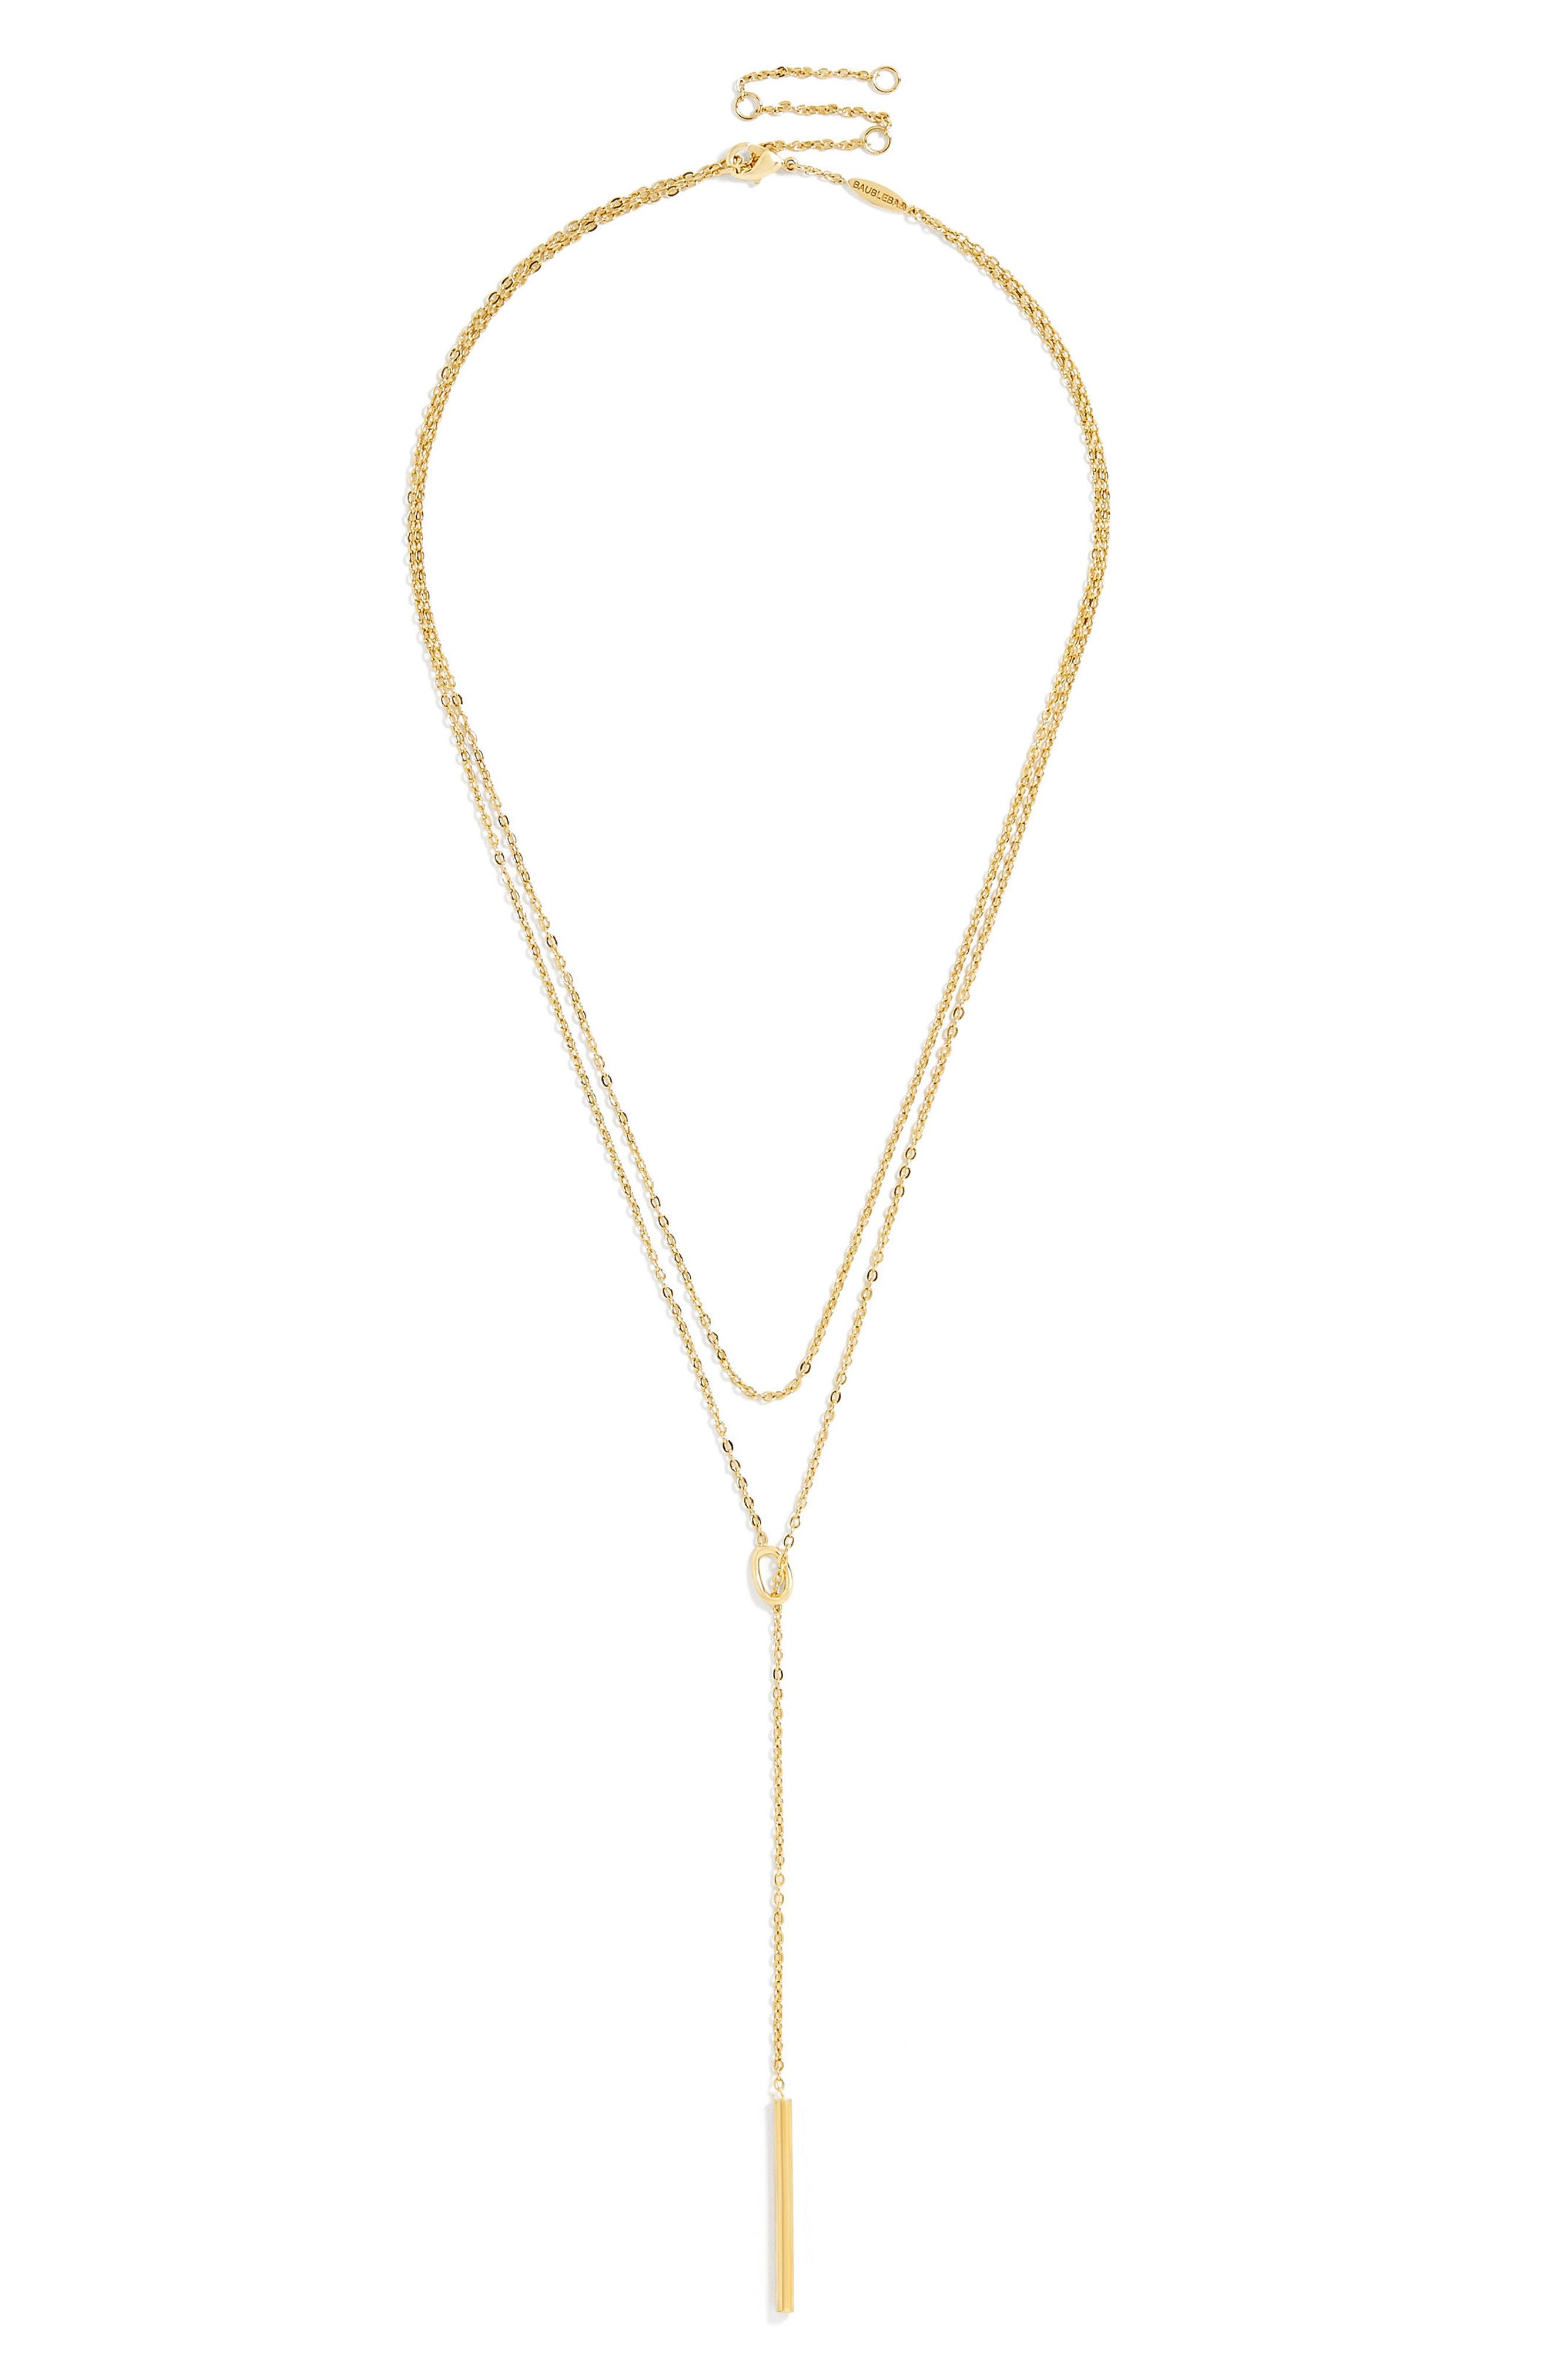 Isabella Everyday Fine Layered Necklace,                             Main thumbnail 1, color,                             710